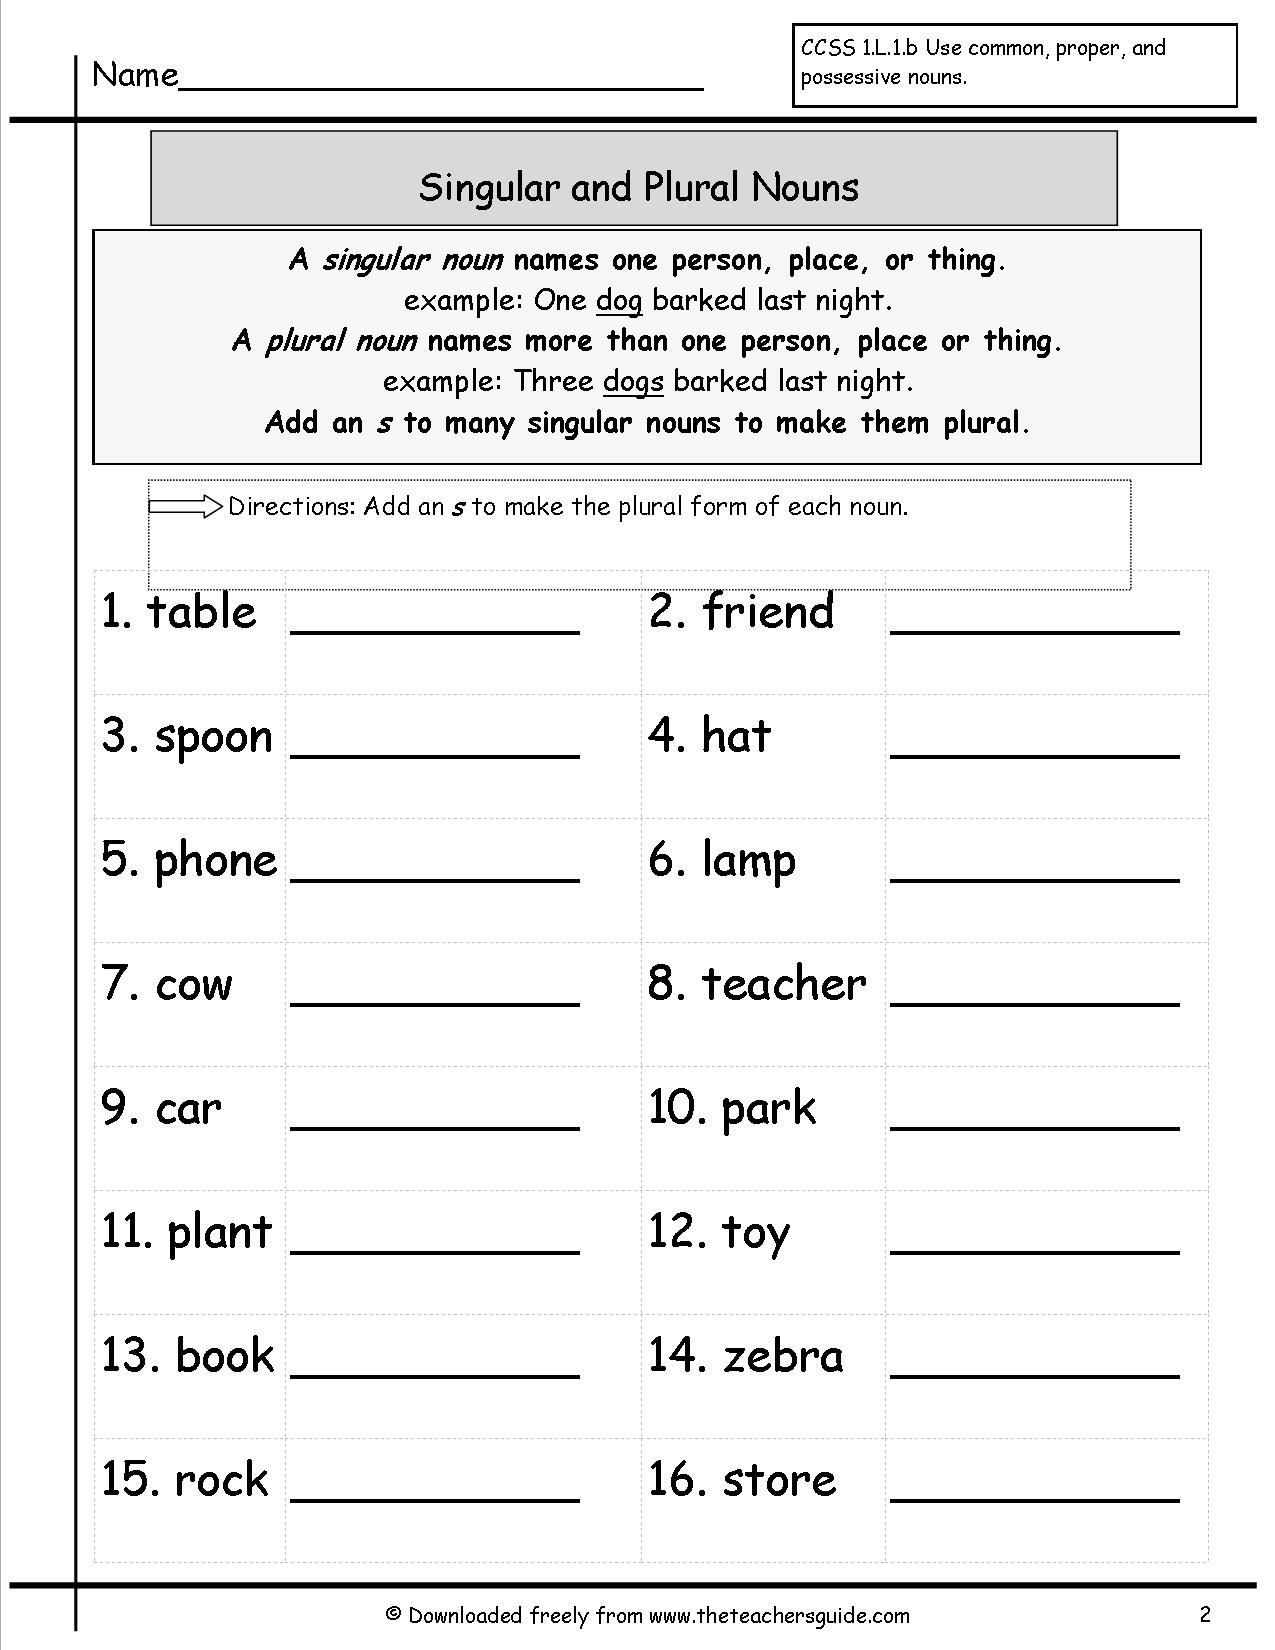 Singular And Plural Nouns Worksheets From The Teacher S Guide Nouns Worksheet Plural Nouns Worksheet In 2021 Nouns Worksheet Plural Nouns Worksheet Plurals Worksheets